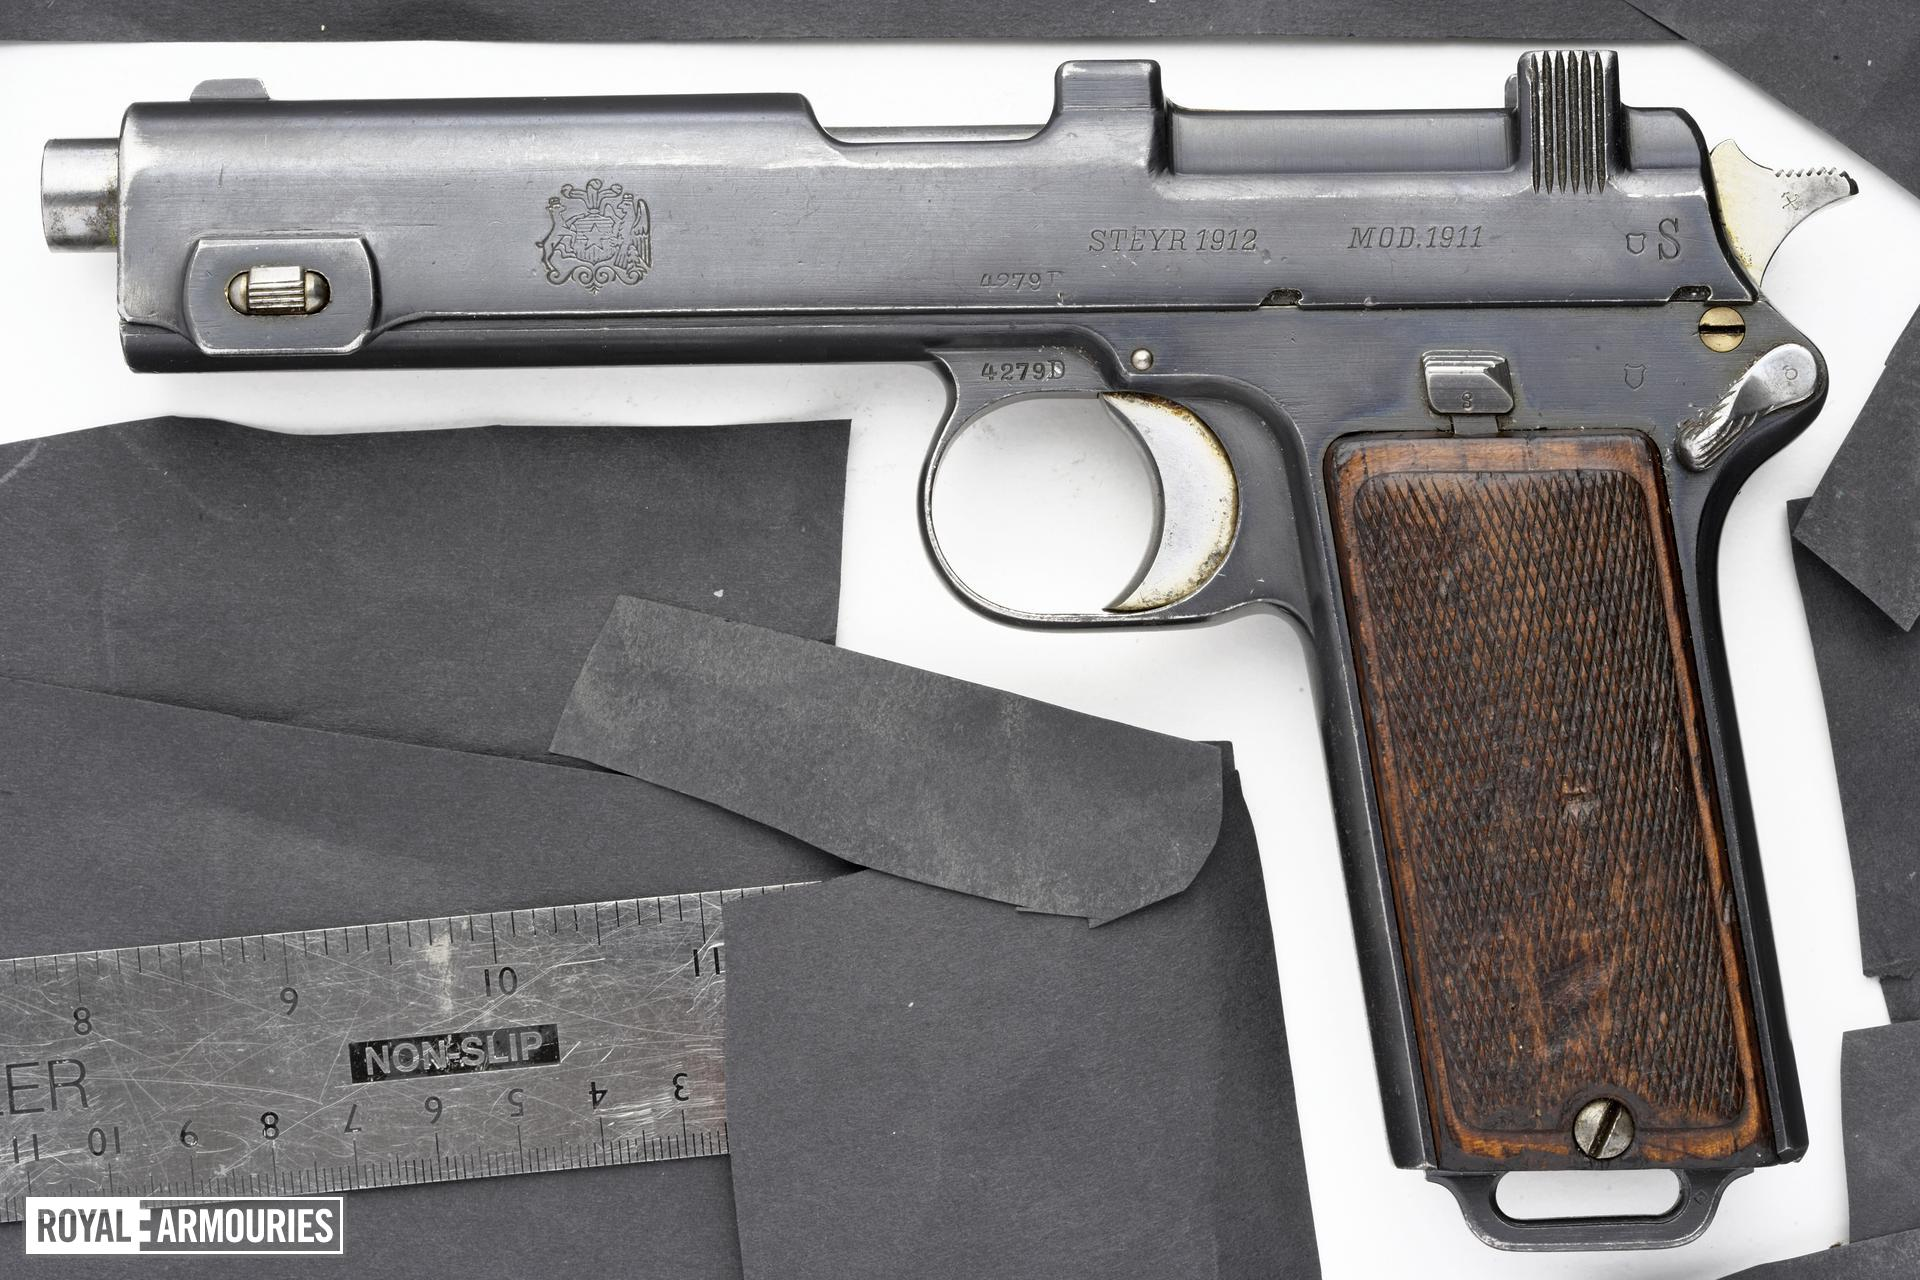 Centrefire self-loading pistol - Steyr Hahn Model 1911